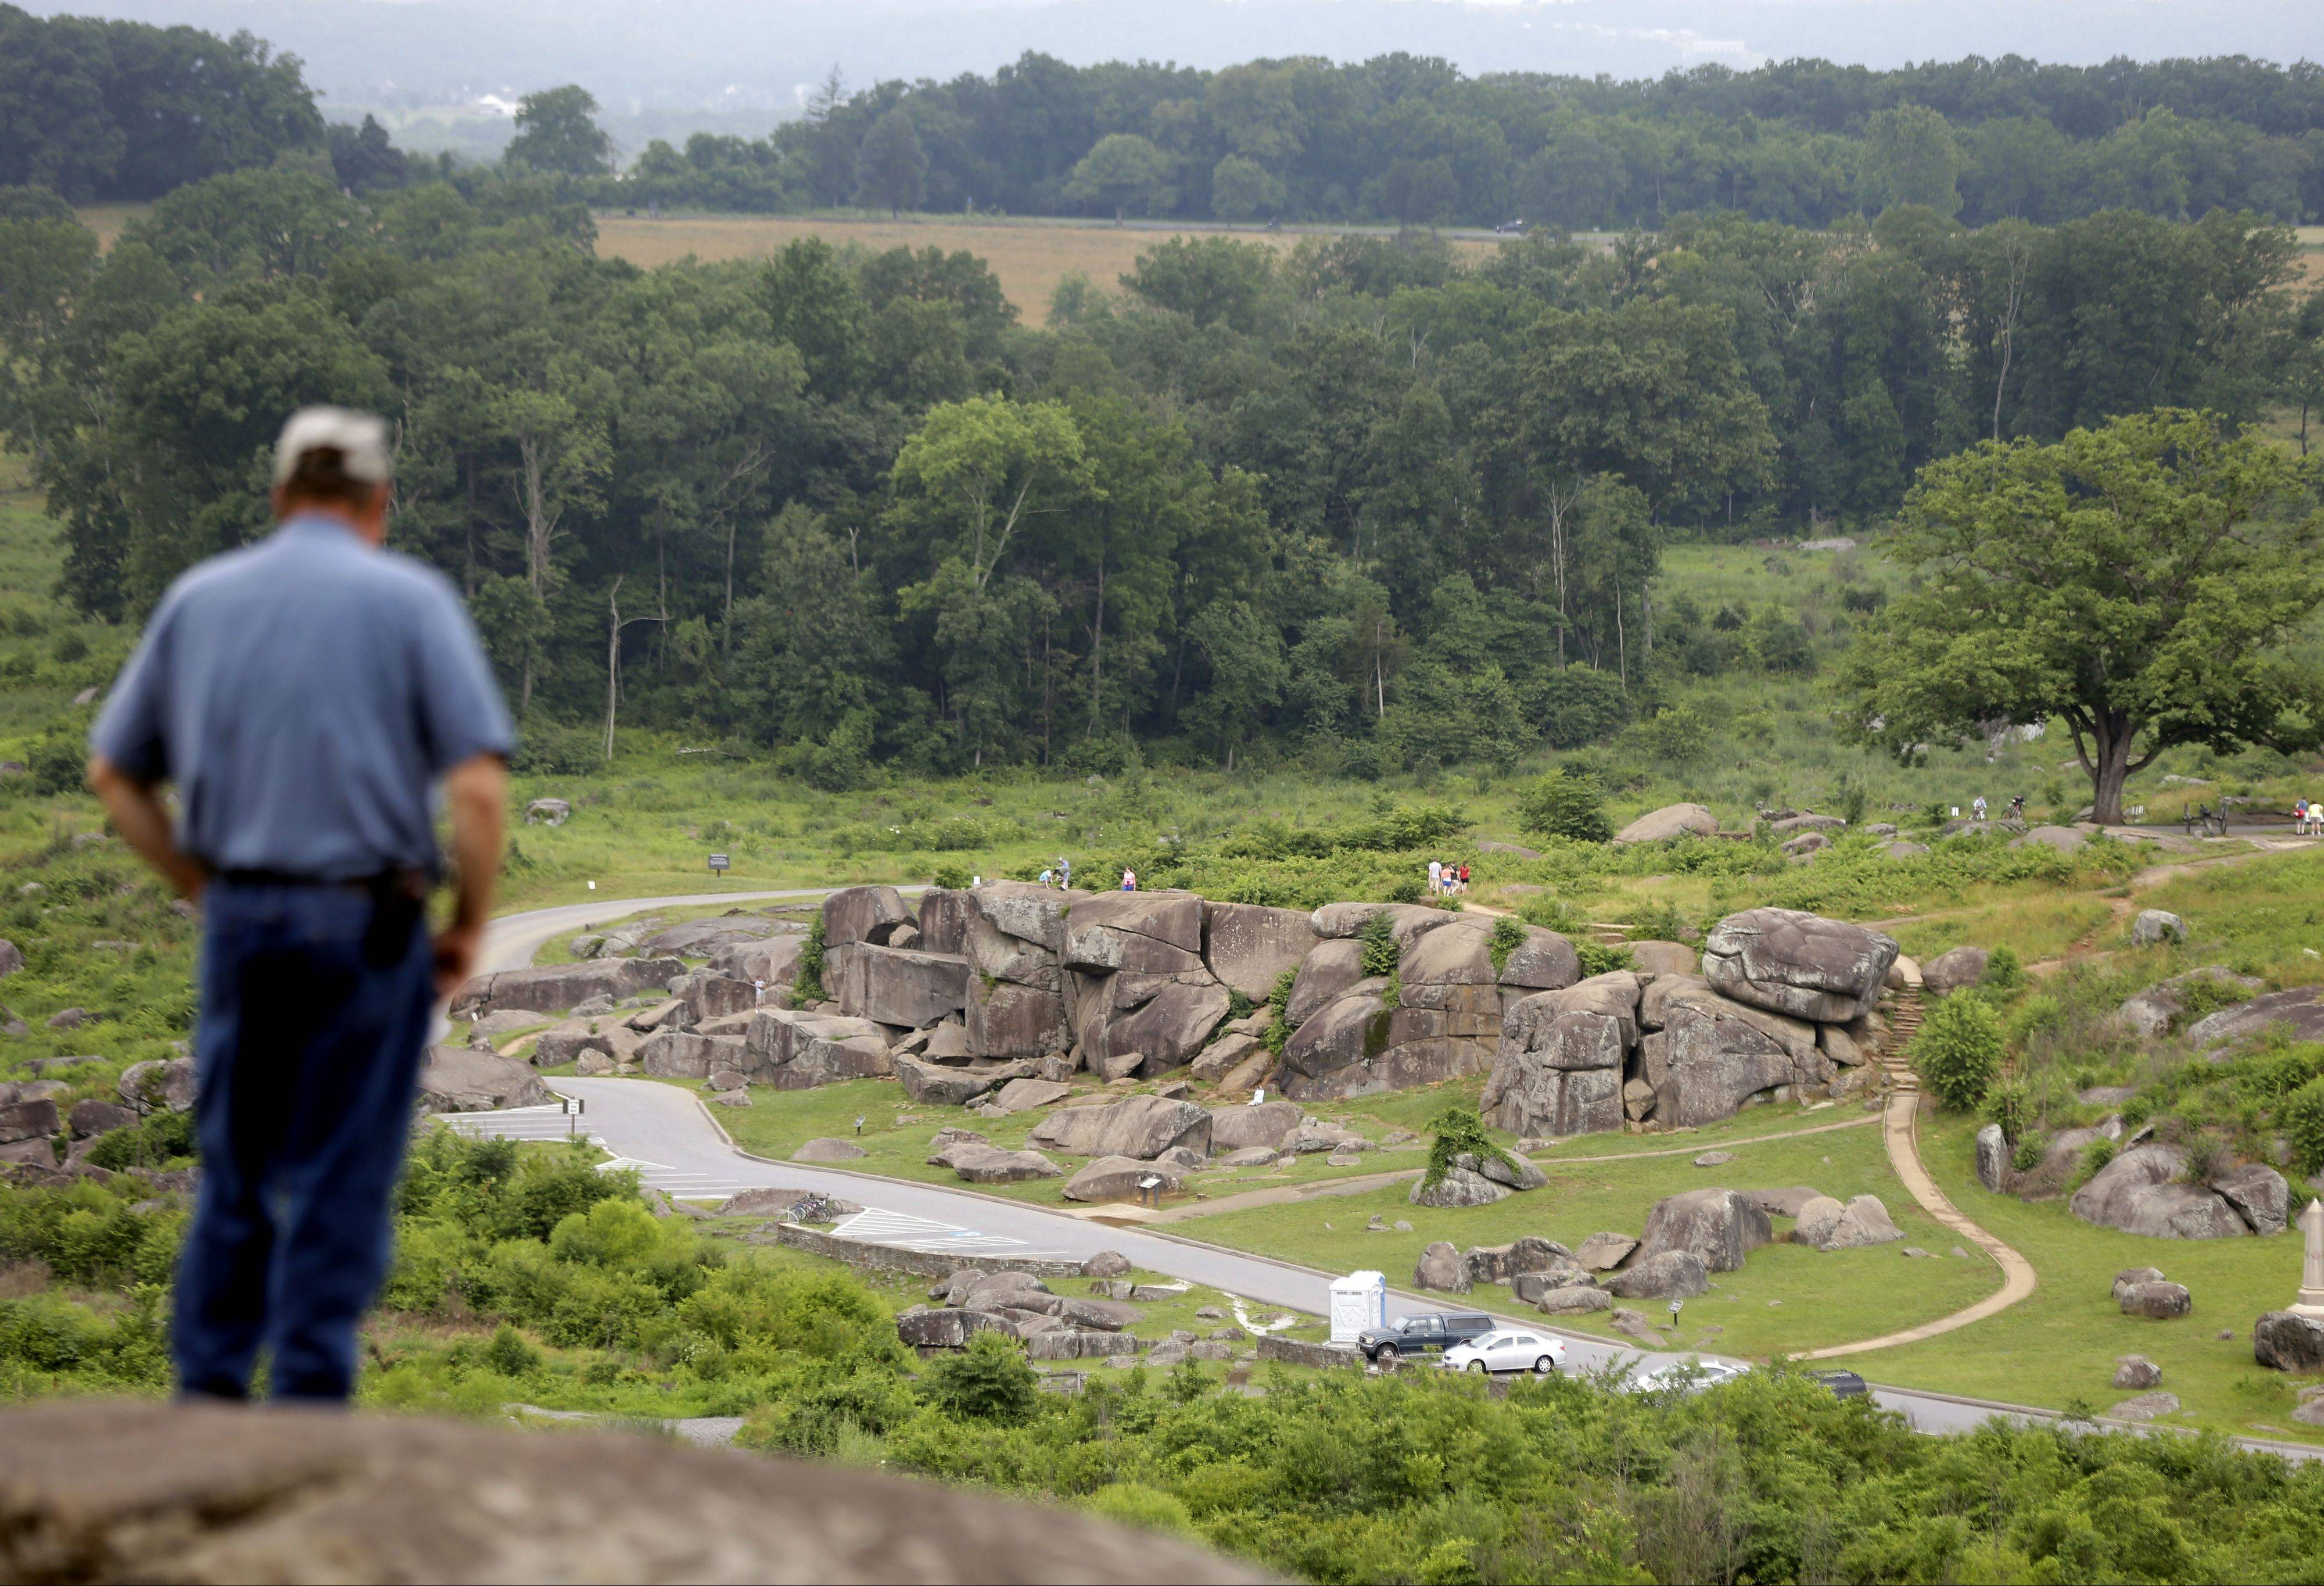 Tim Jenkins of Virginia views the Devil's Den from Little Round Top during ongoing activities commemorating the 150th anniversary of the Battle of Gettysburg.